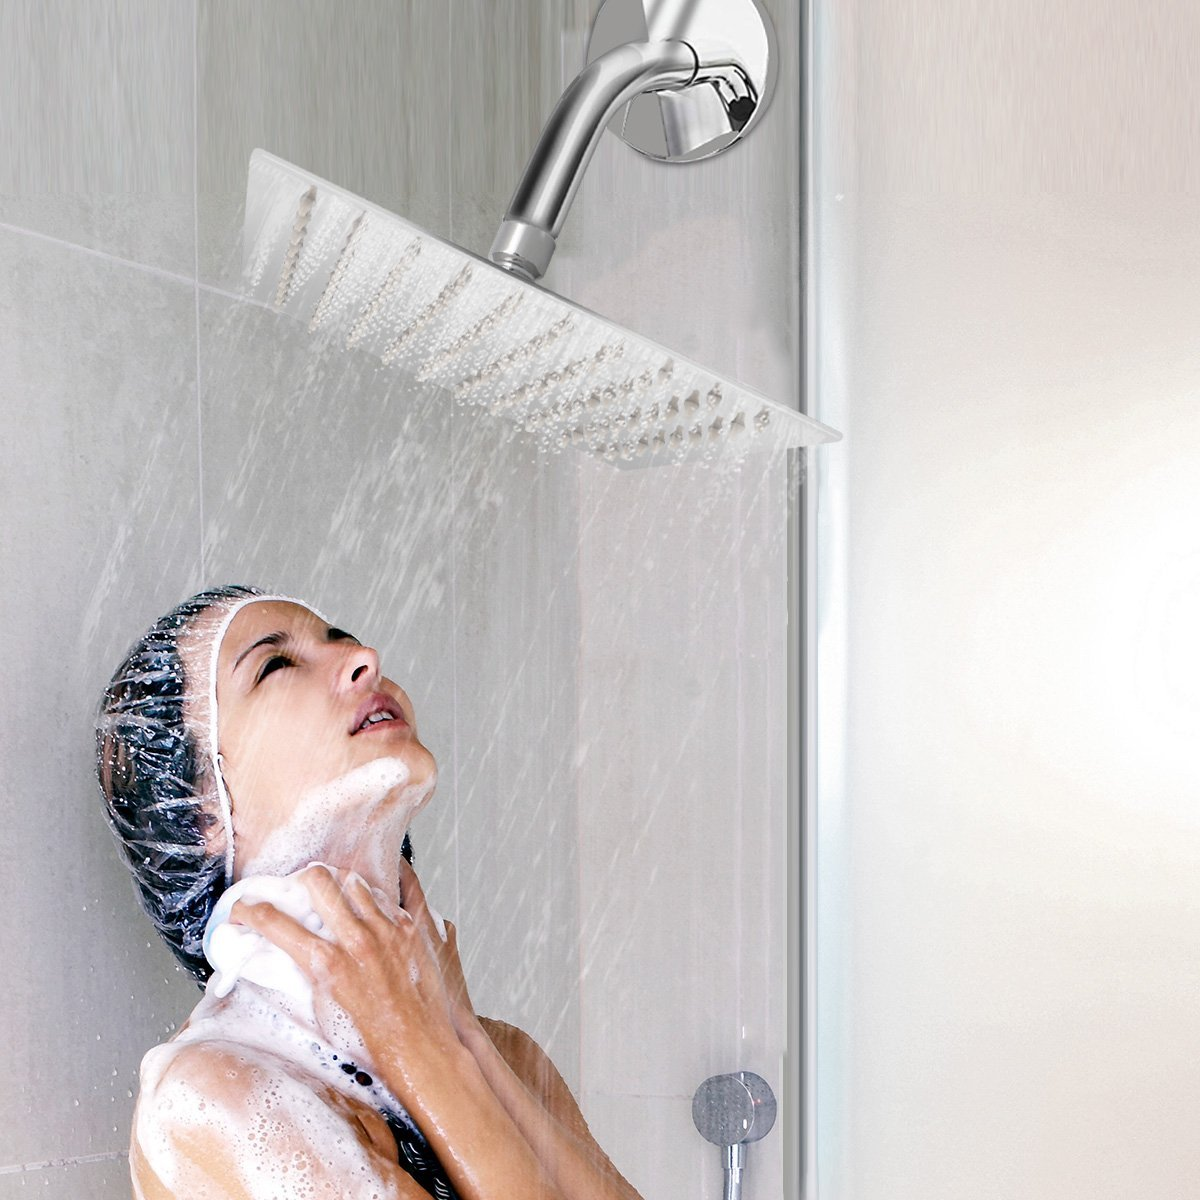 Rainfall Shower head, ieGeek Universal Luxury Large Bath Shower 304 Stainless Steel High Pressure Shower Head with Full Polish Chrome Finish and Anti-lime Nozzles Easy to Install Square - 12 Inch by ieGeek (Image #7)